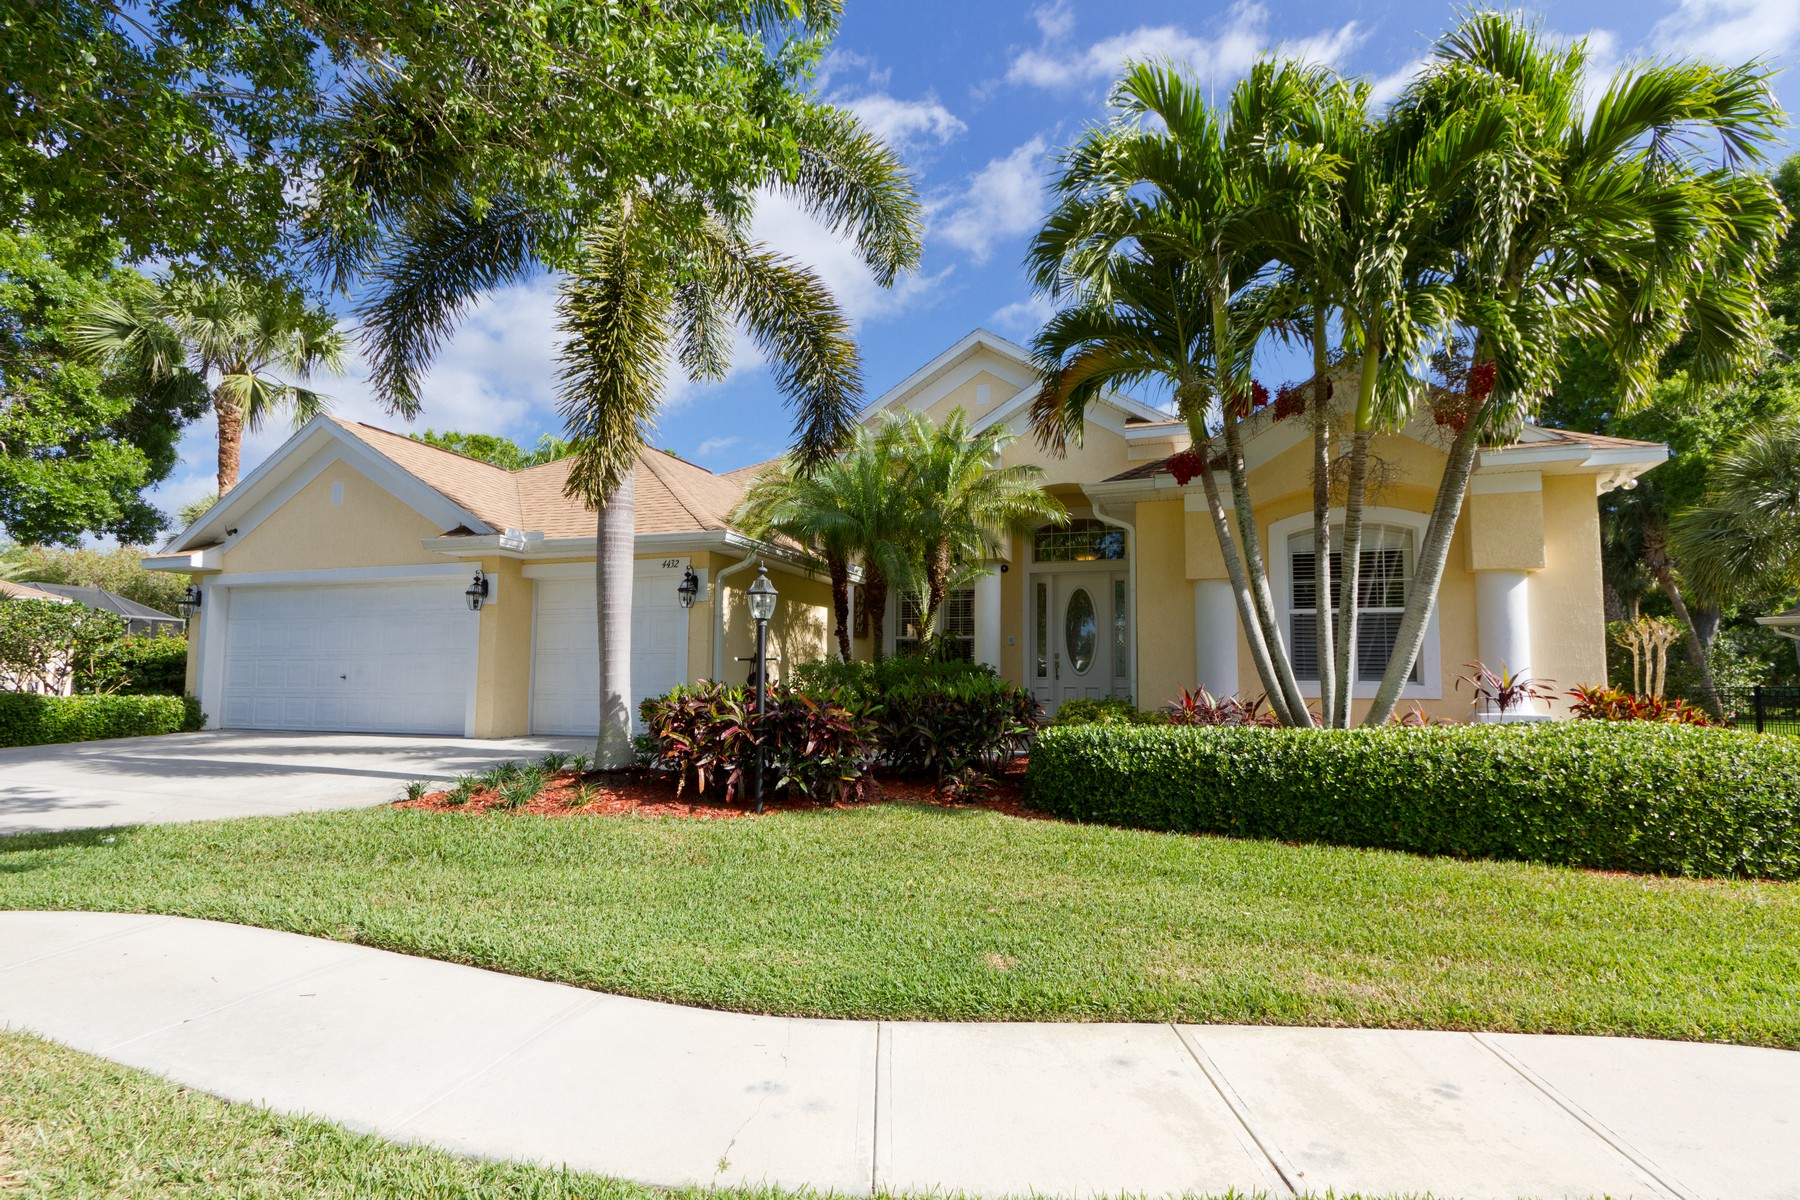 Property for Sale at Captivating Two Story Pool Home on Cul-De-Sac 4432 8th Street SW Vero Beach, Florida 32968 United States